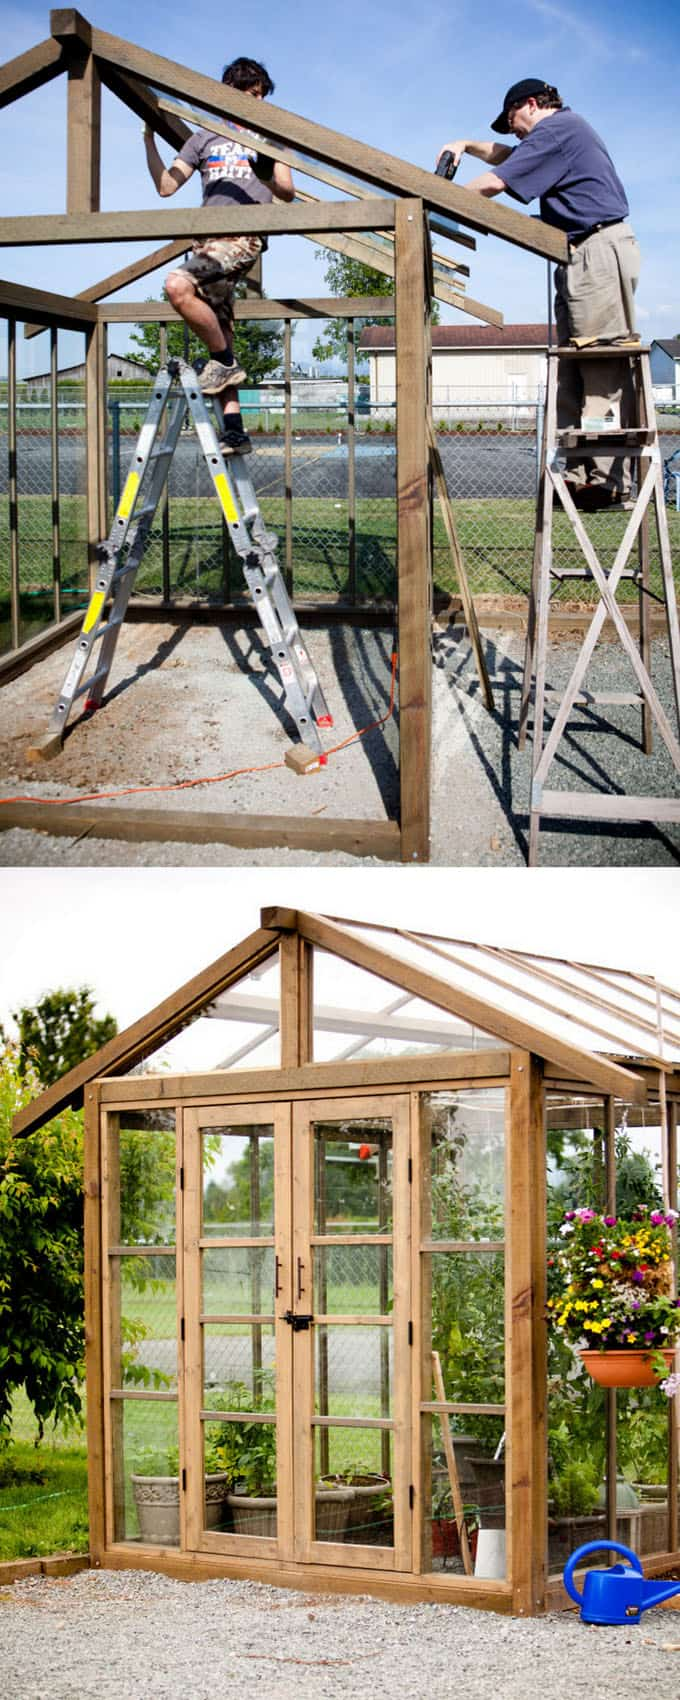 12 diy dream sheds and greenhouses with reclaimed windows for Reclaimed window greenhouse